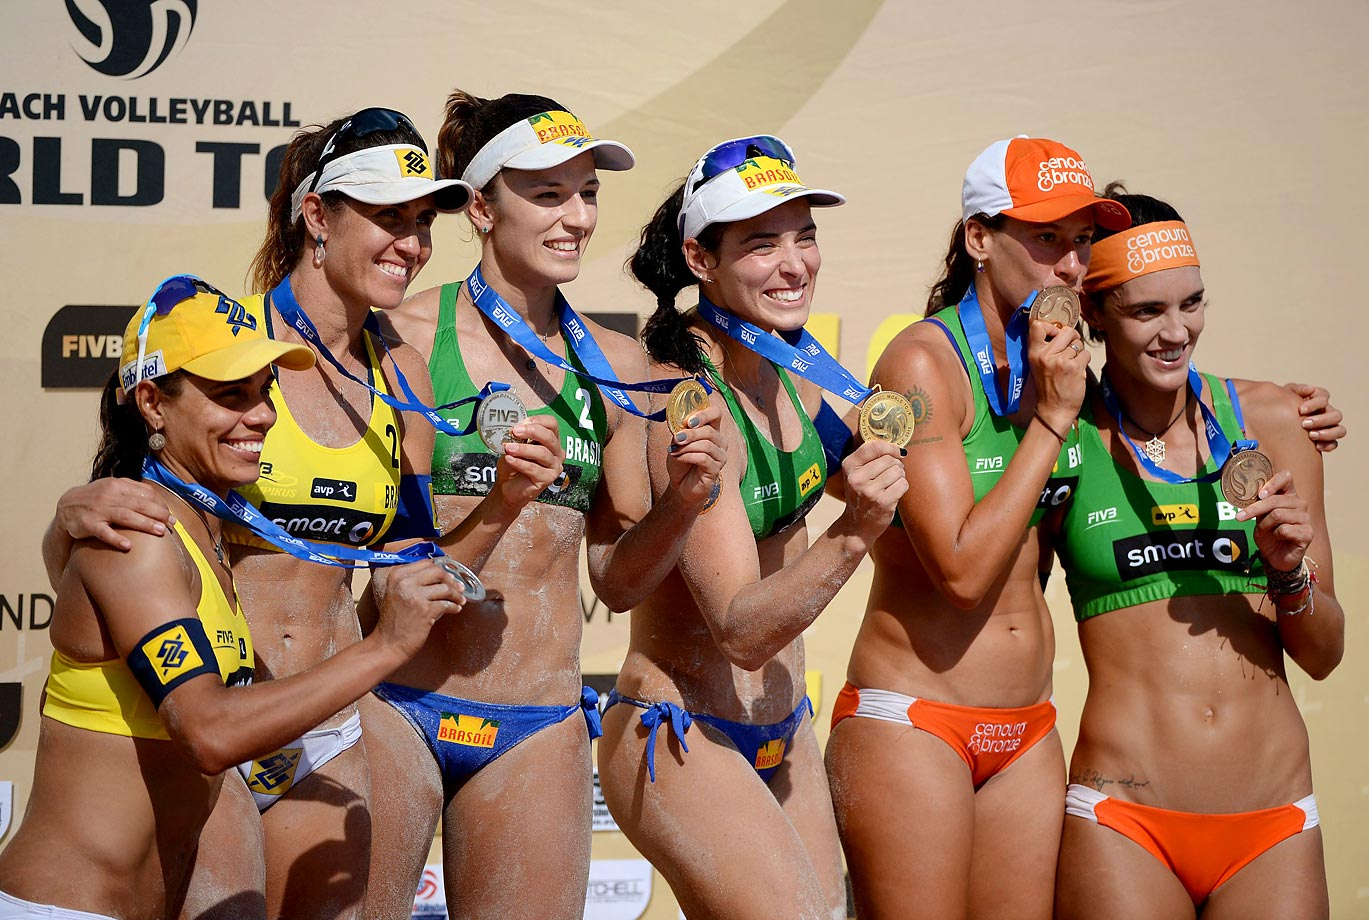 A shot of the all-Brazilian winners podium (L-R): silver medalists Juliana Felisberta and Maria Antonelli, gold medalists Agatha Bednarczuk and Barbara Seixas and bronze medalists Fernanda Alves Berti and Taiana Lima.